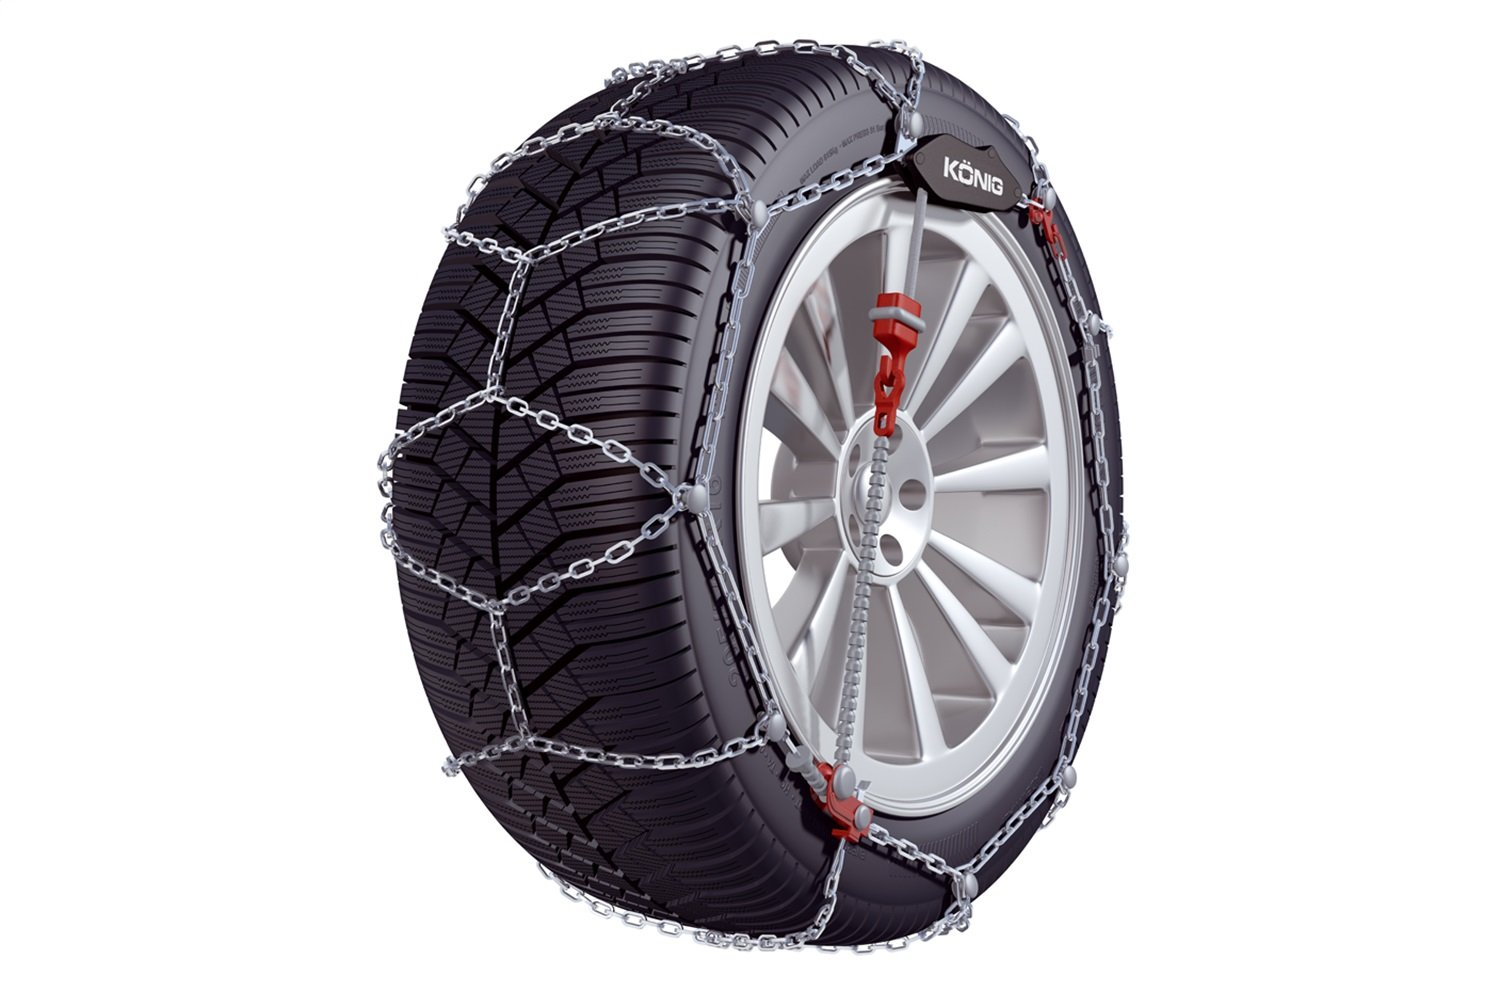 Konig 9mm CG9 Premium Passenger Car Snow Chain Size 102 Sold in pairs